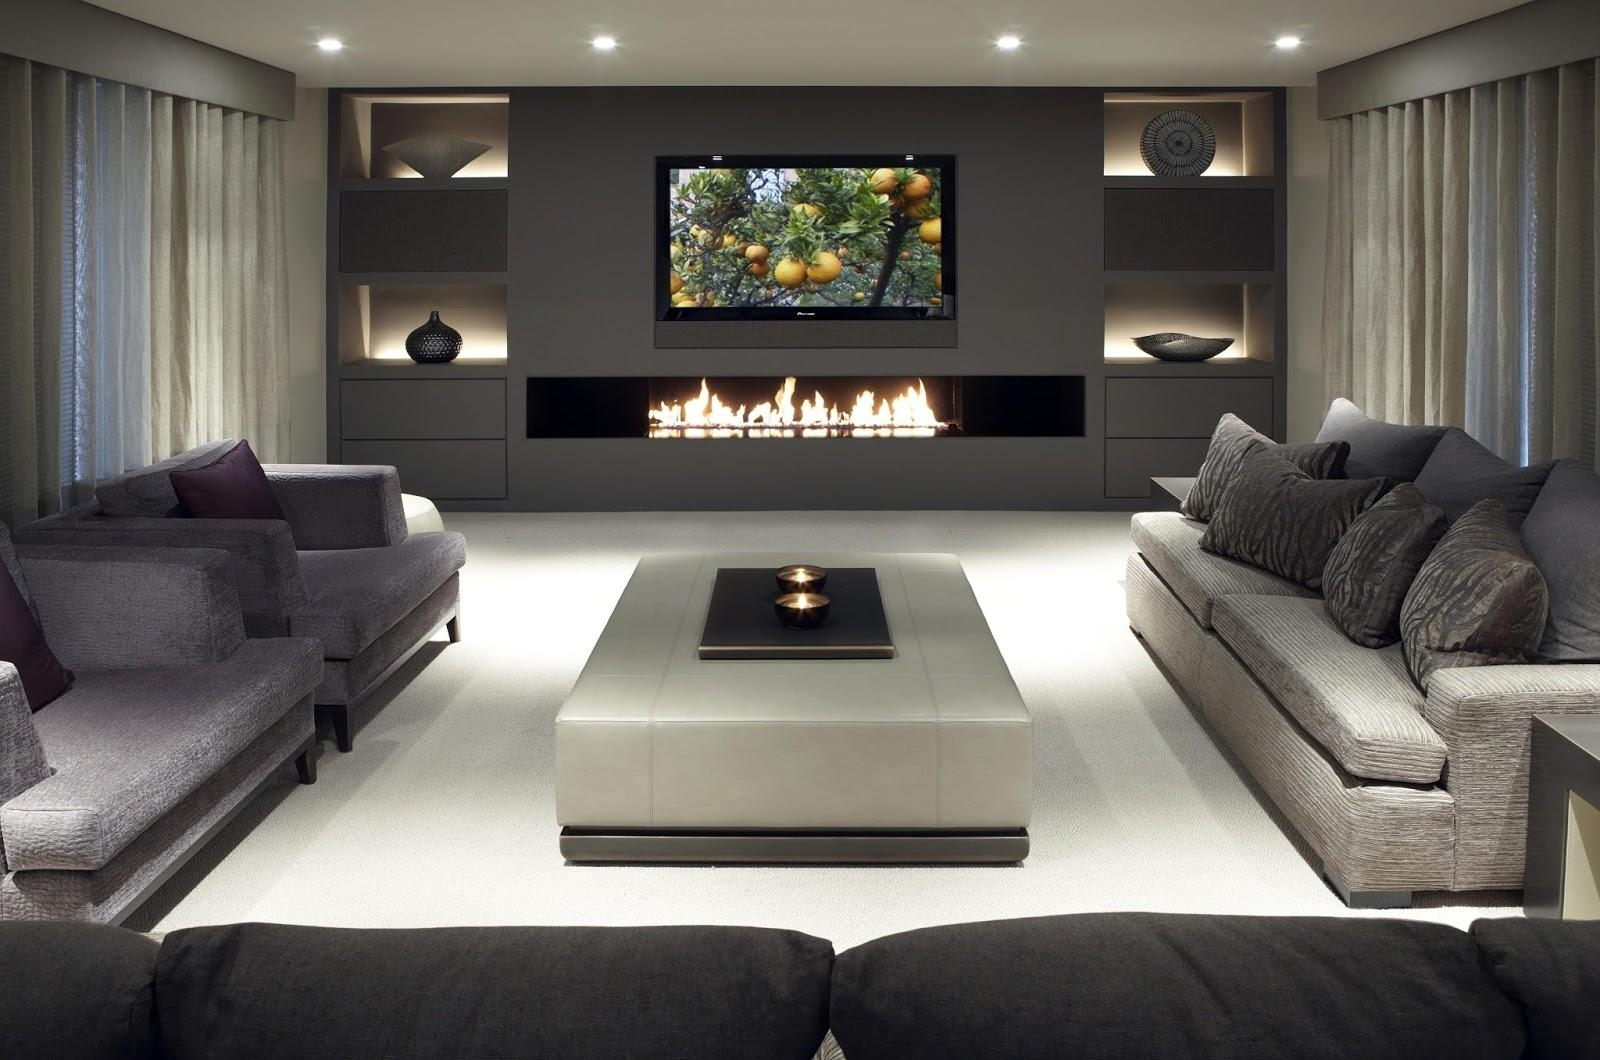 3 Media Room Ideas That Will Suit You | Luhomes in Media Room Sectional